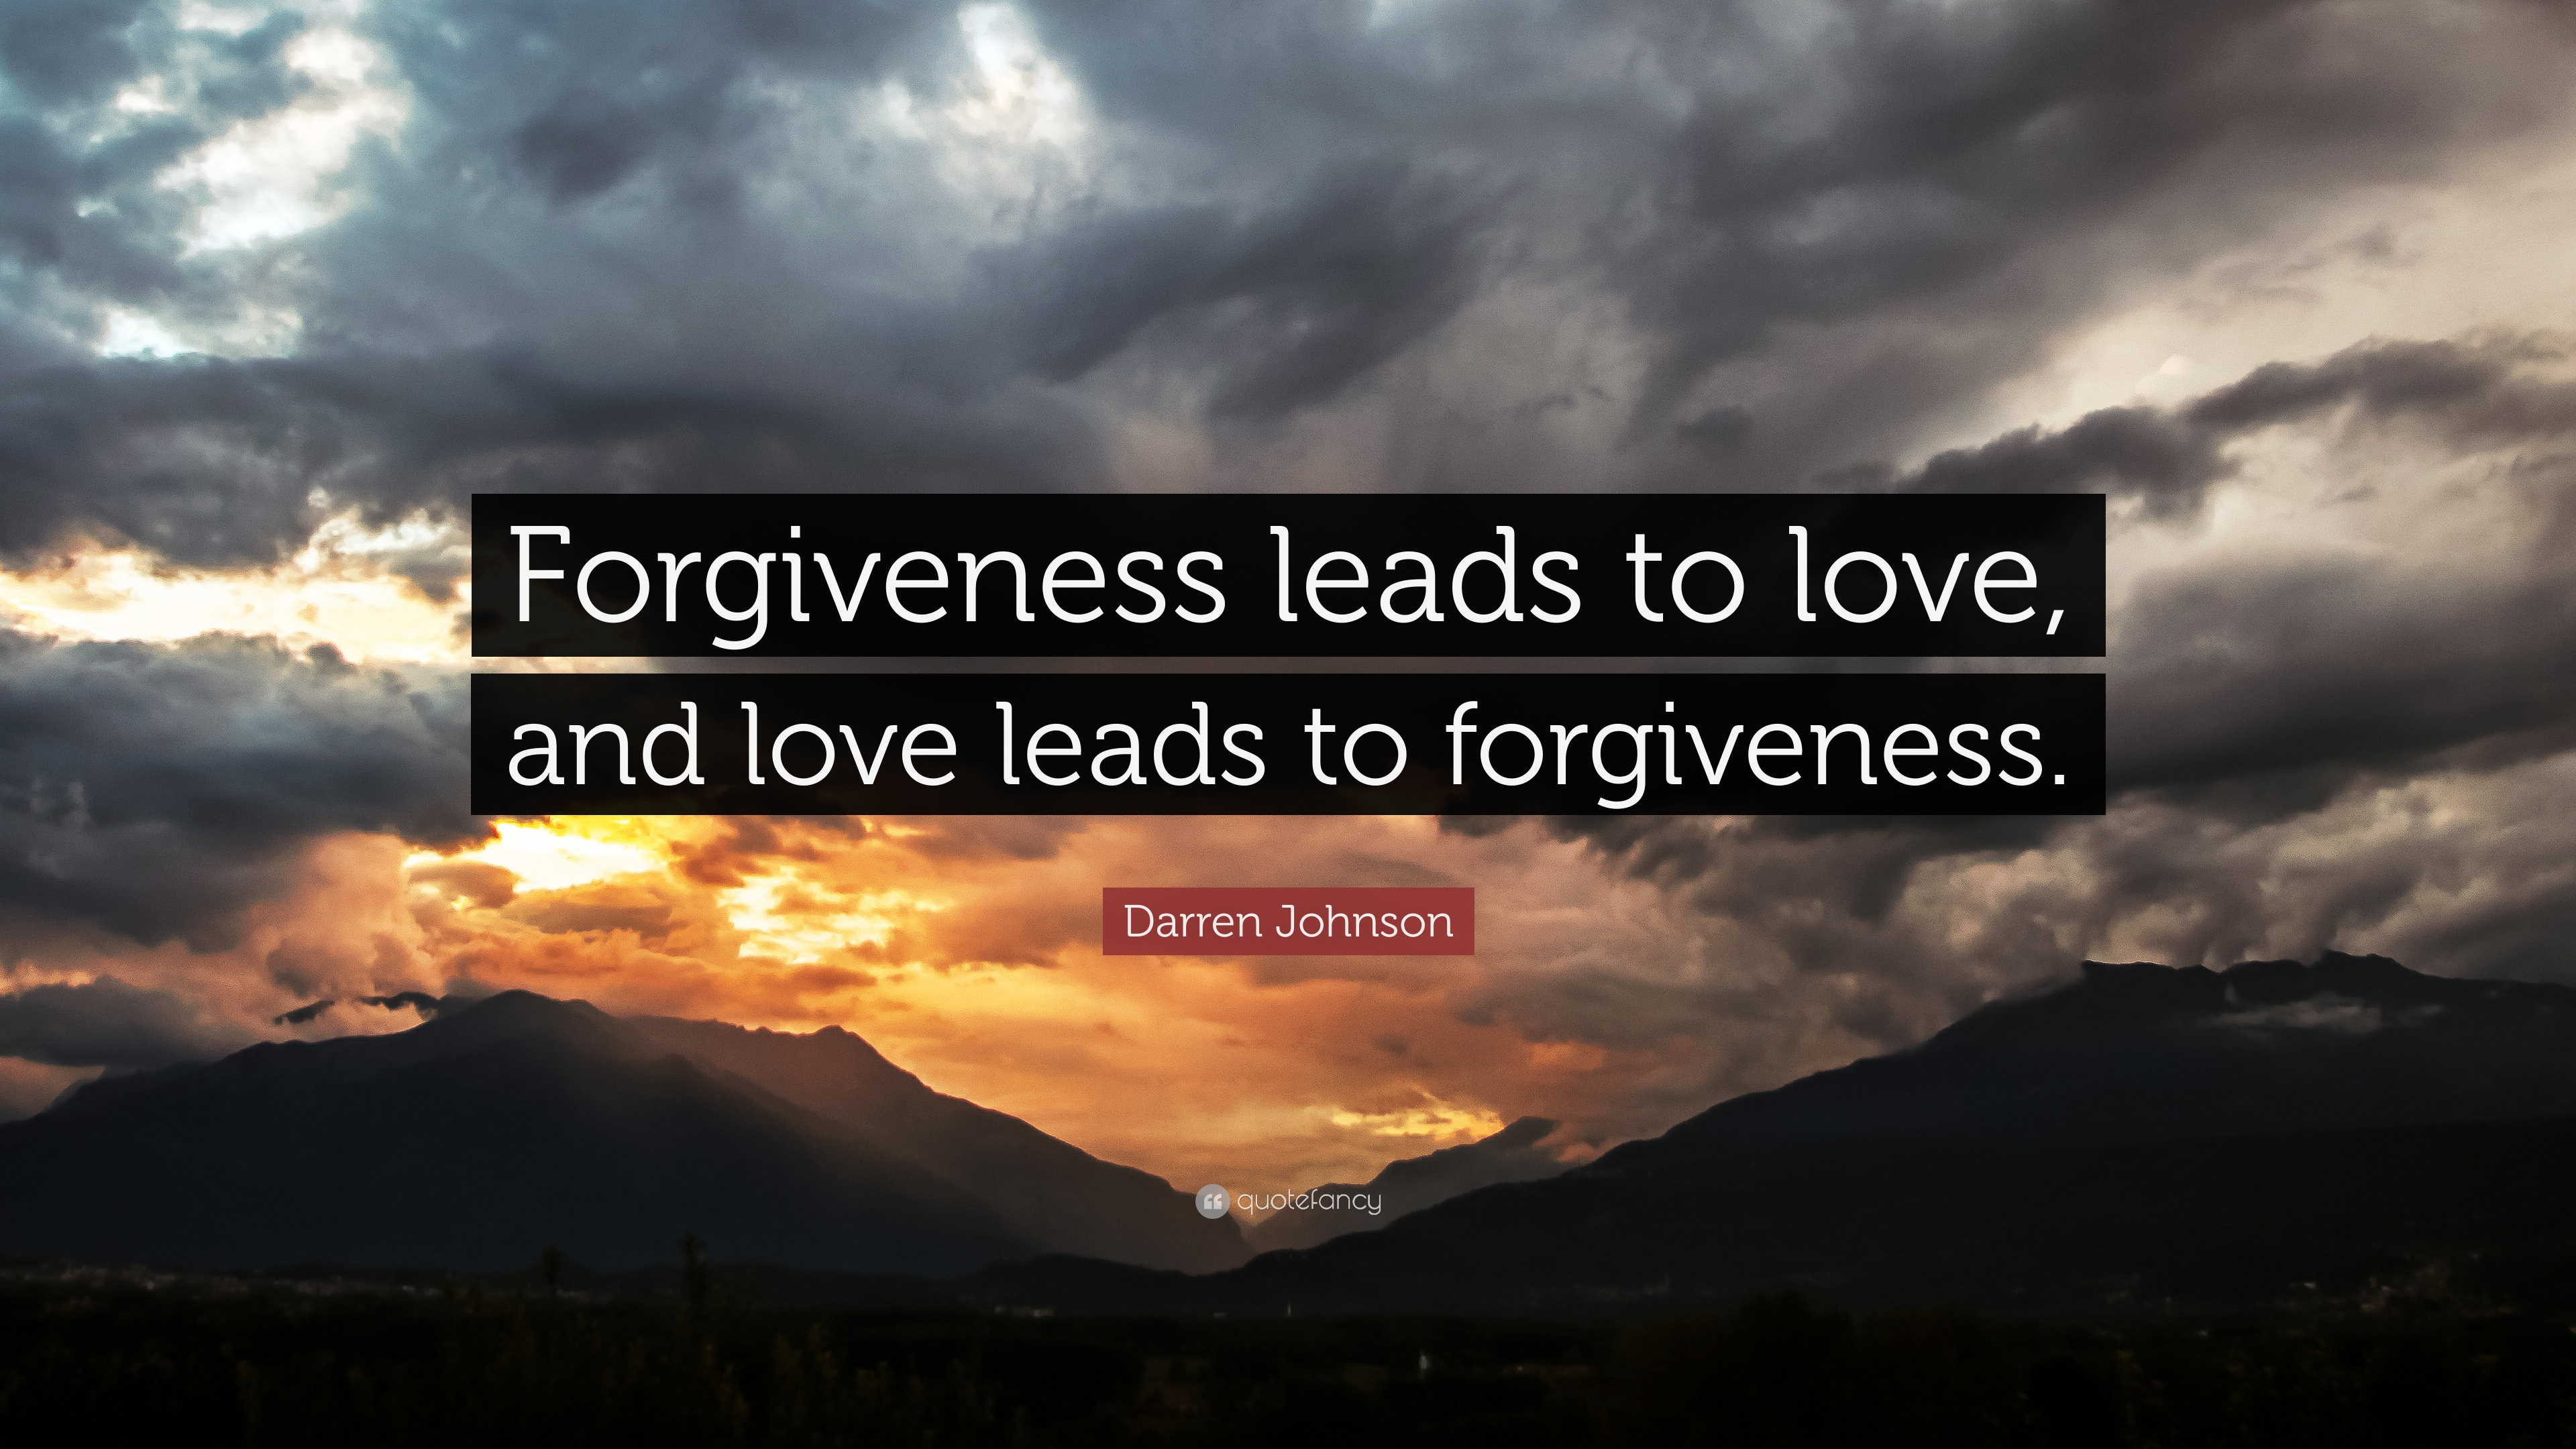 Etonnant Darren Johnson Quote: U201cForgiveness Leads To Love, And Love Leads To  Forgiveness.